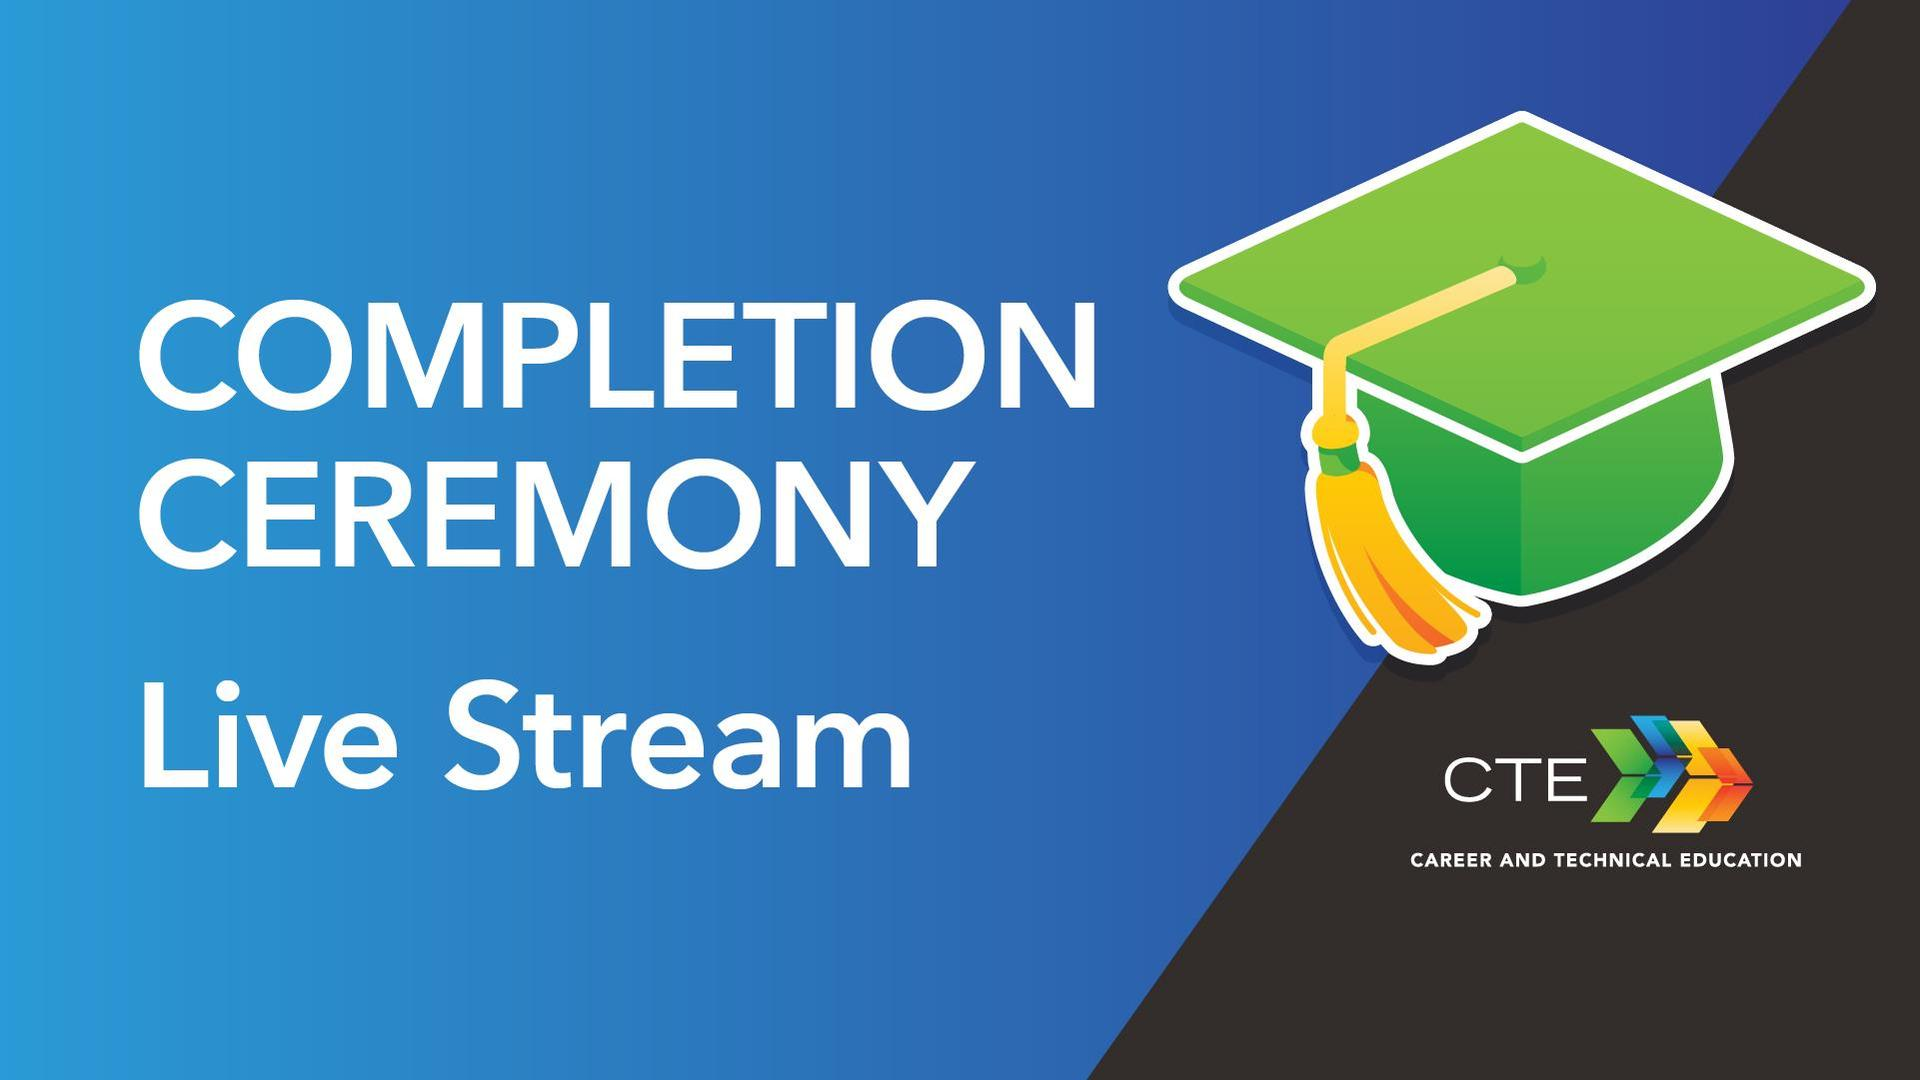 Graphic image of graduation cap for Live Stream events